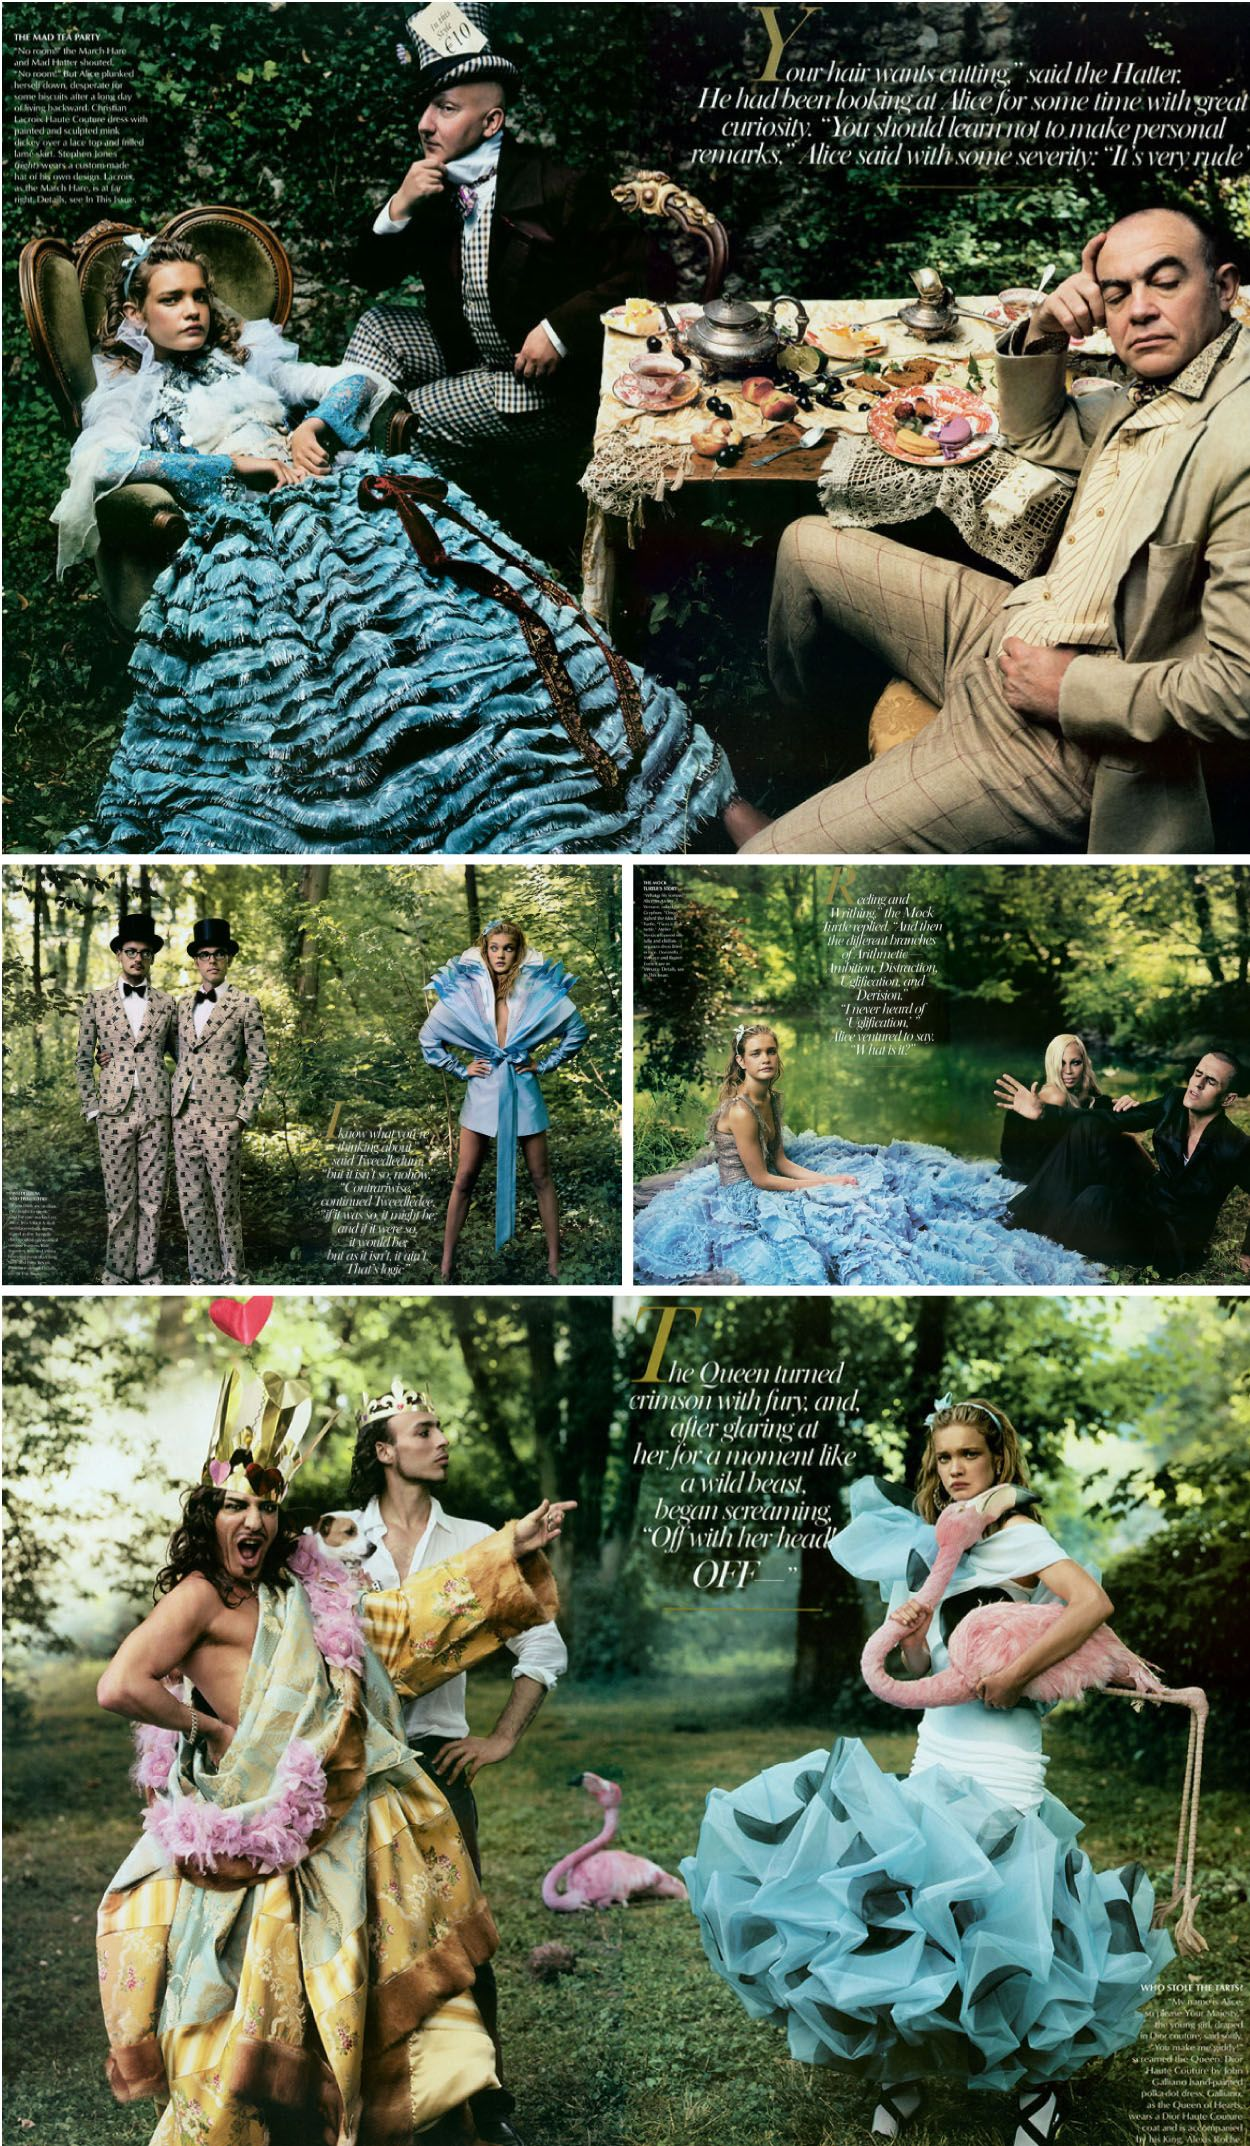 best images about natalia vodianova in alice in wonderland 17 best images about natalia vodianova in alice in wonderland photographed by annie leibovitz tom ford fashion editorials and annie